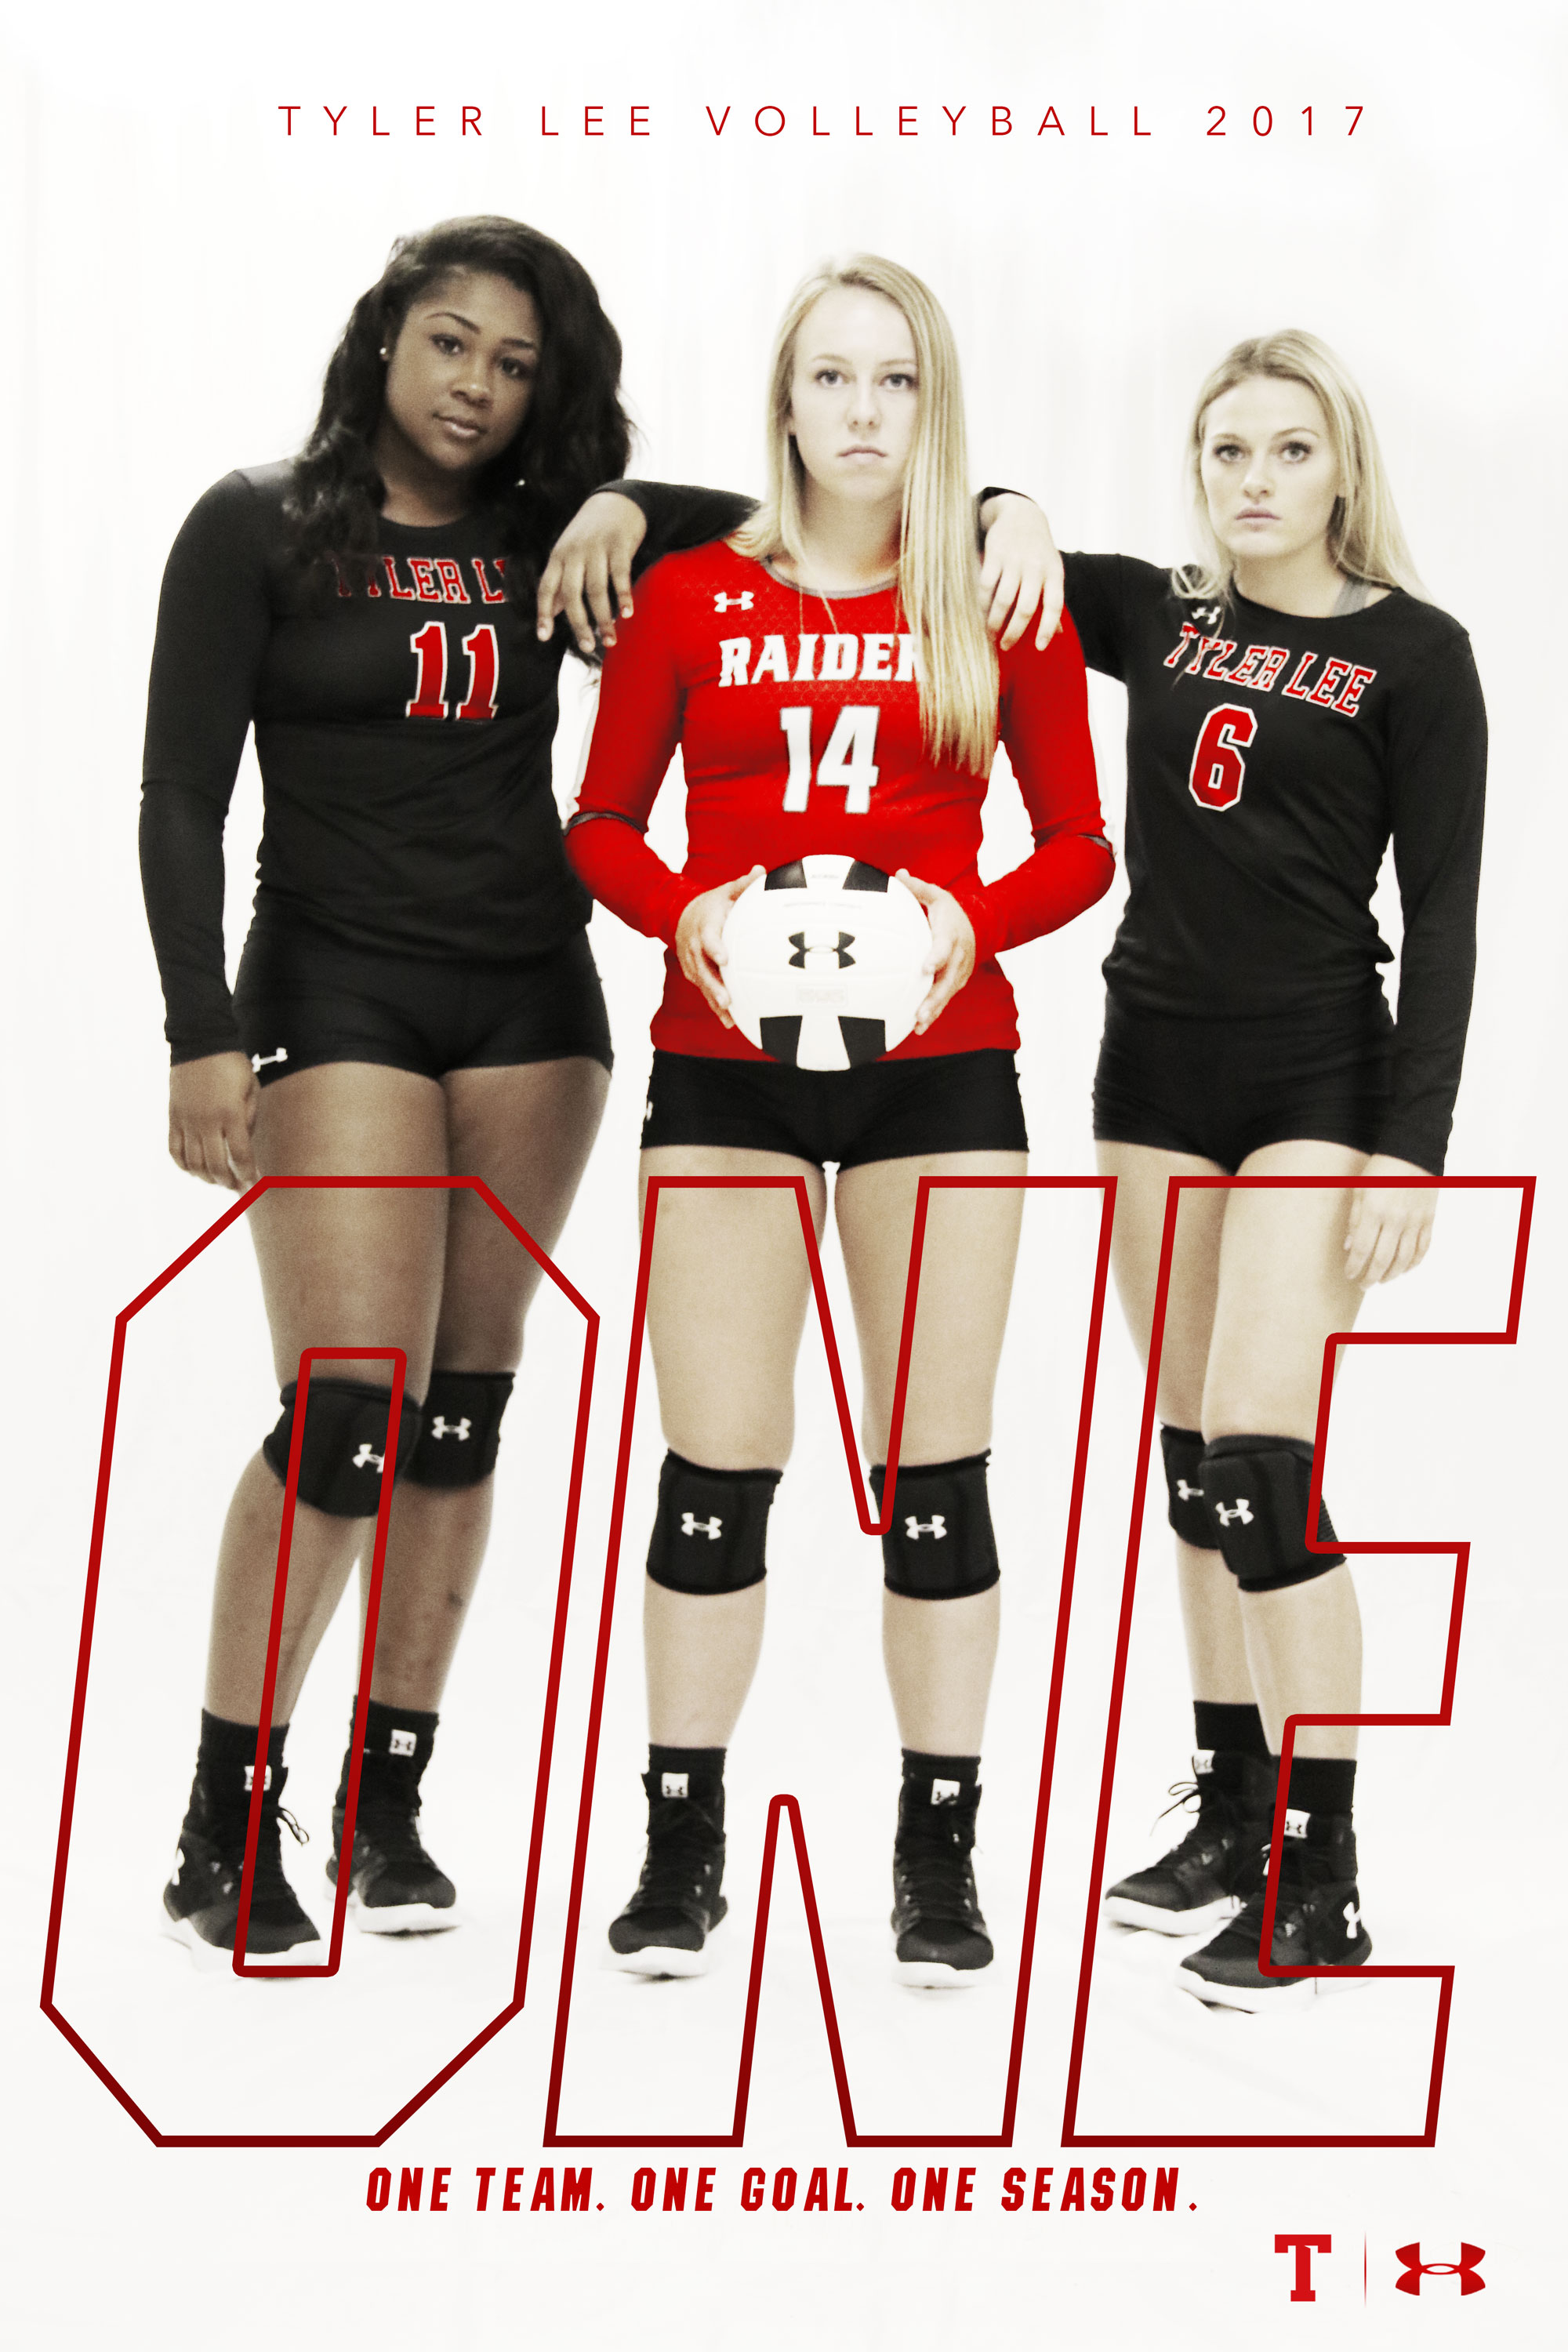 Tyler Lee Volleyball 2017 poster